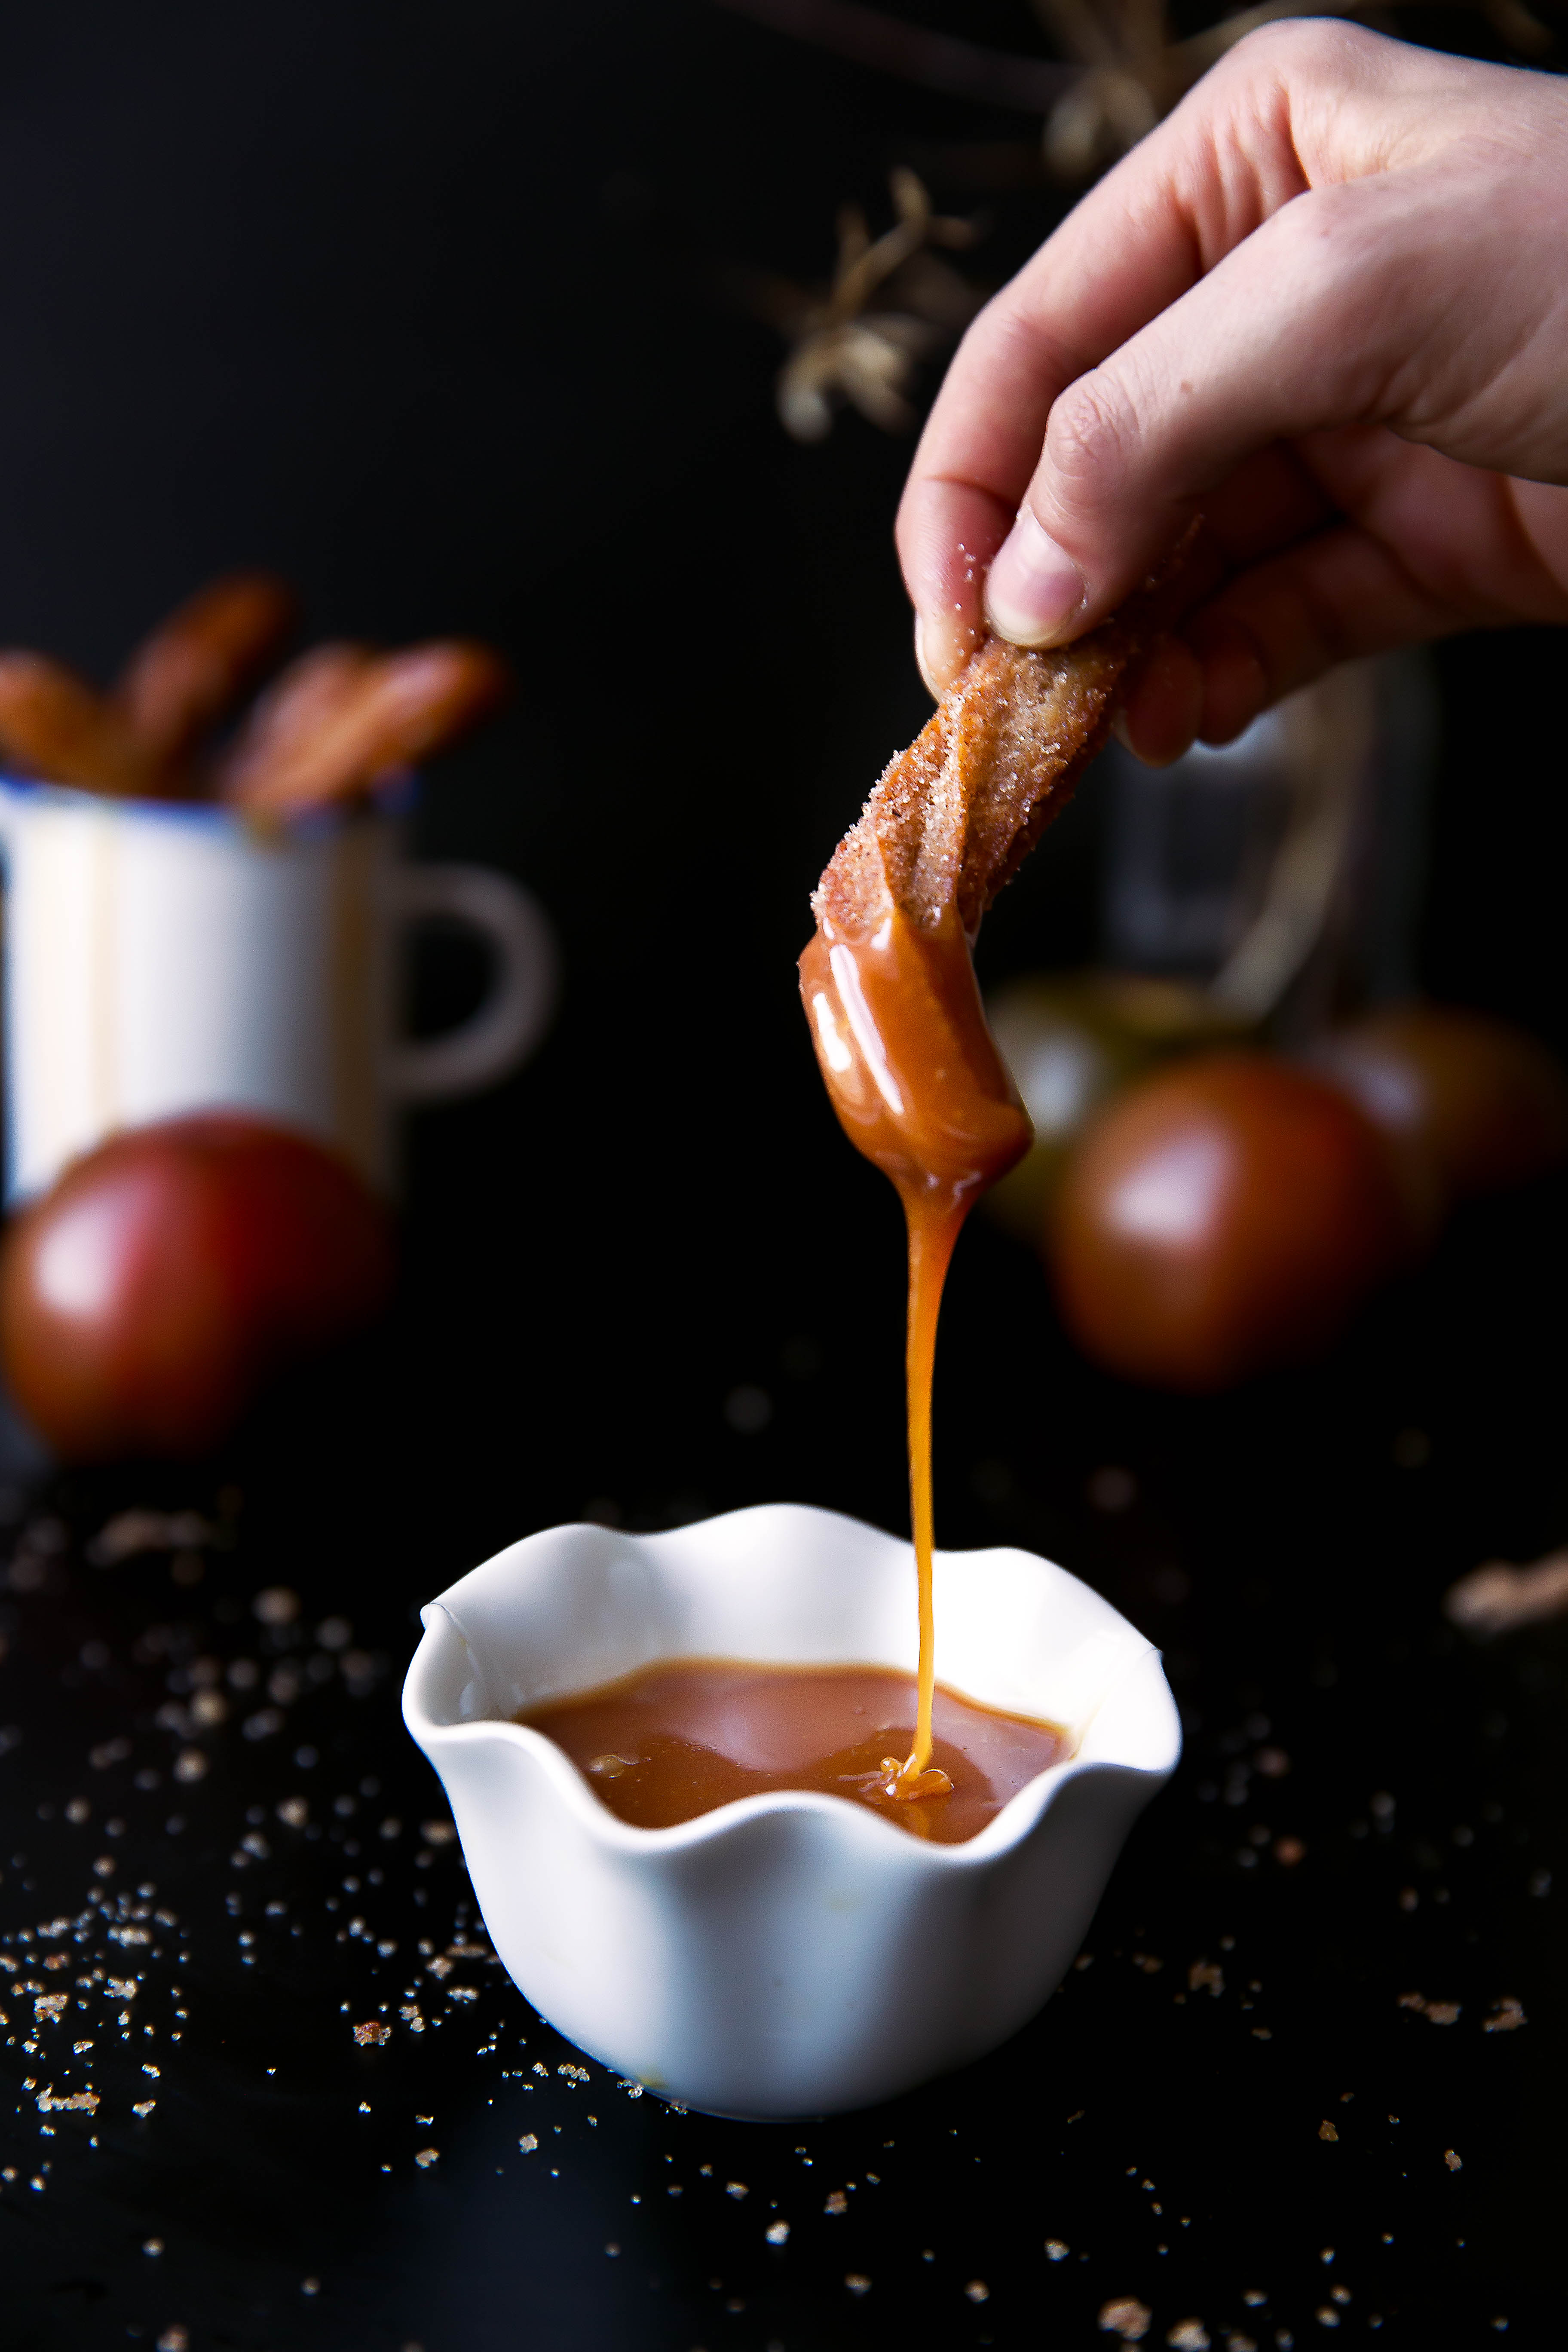 Just in time for fall: light and airy apple cider churros with salted caramel sauce perfect for dunking!